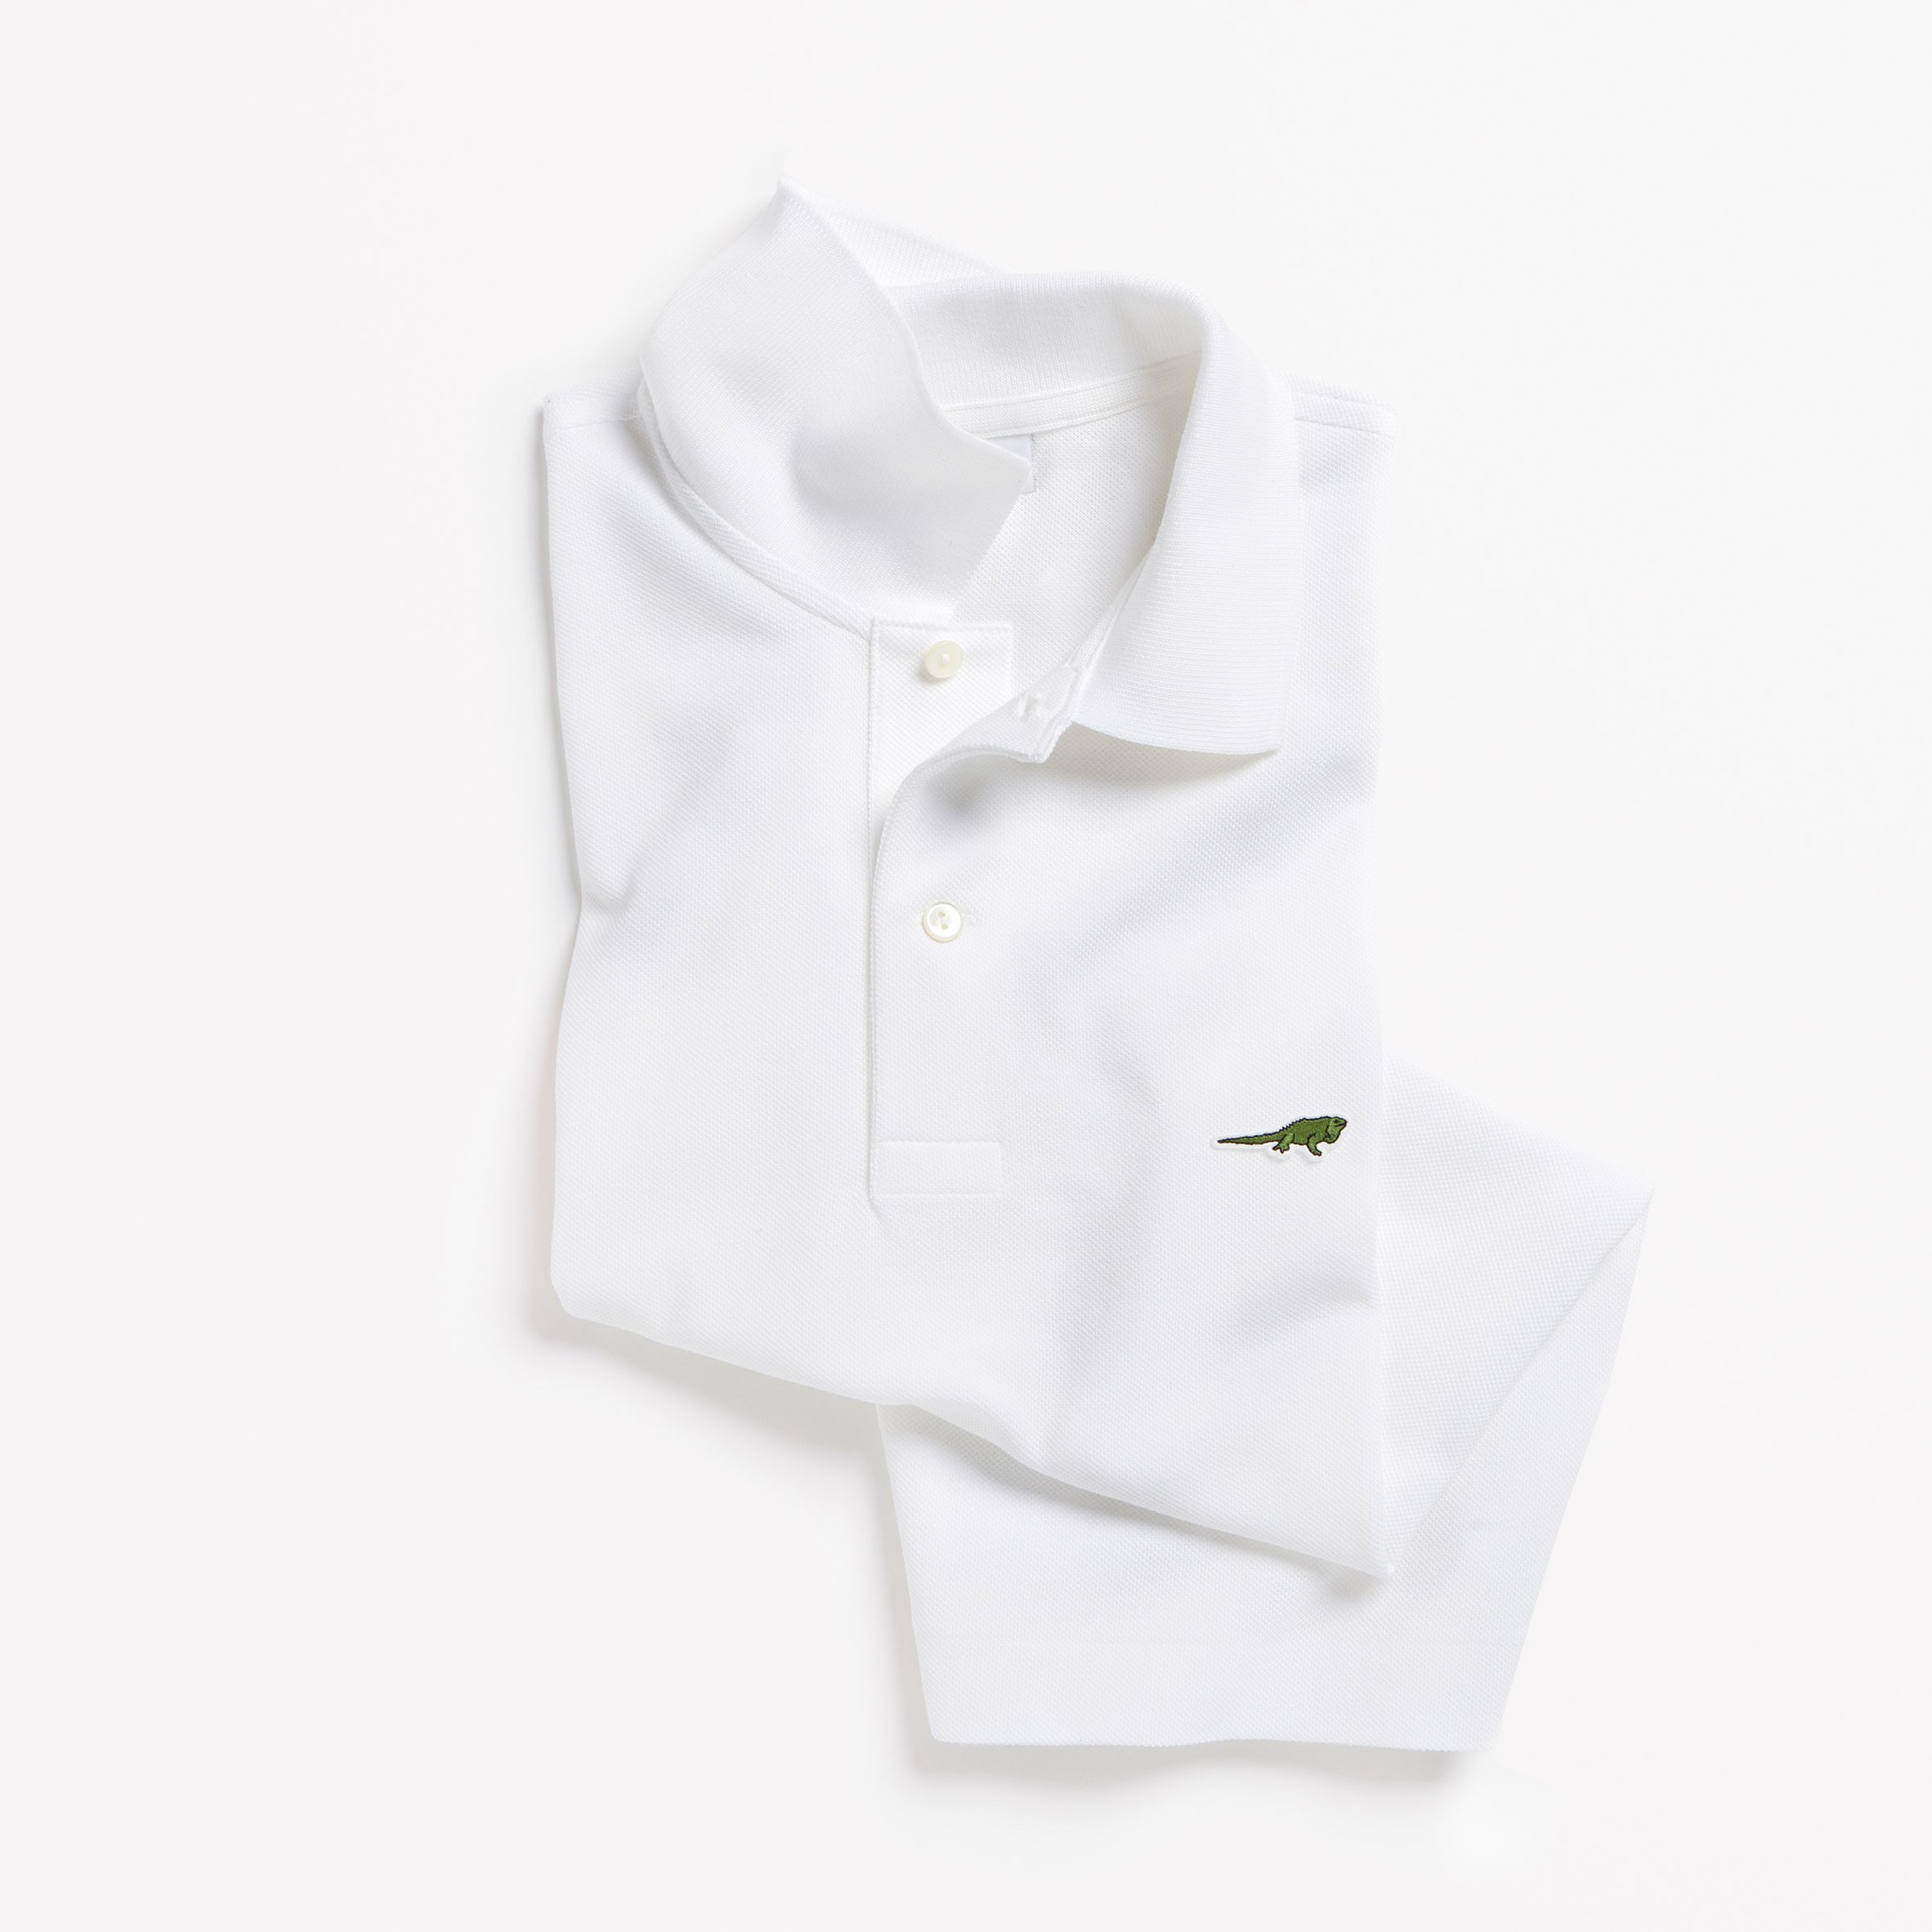 9adfbe9ea ... Lacoste's crocodile logo is replaced by endangered species for limited  edition polo shirts ...